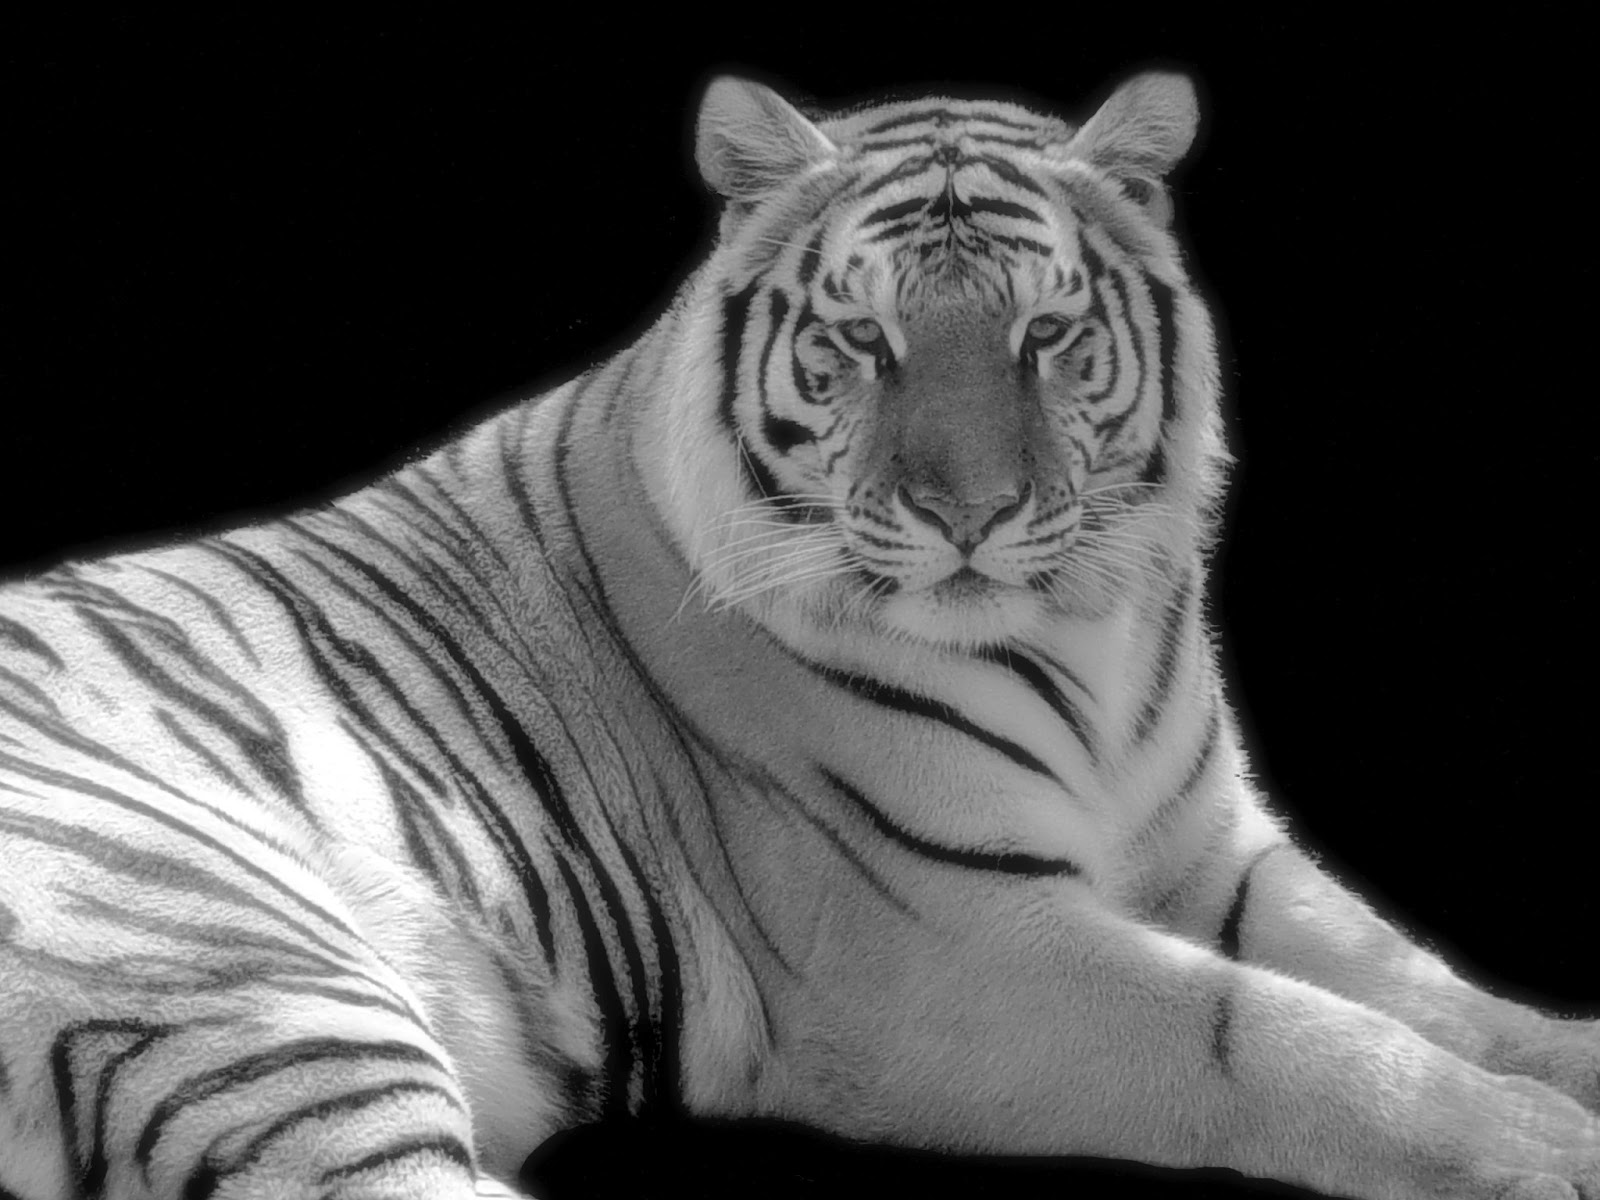 Feng shui 8 mansions feng shui celestial creatures white tiger feng shui celestial creatures white tiger biocorpaavc